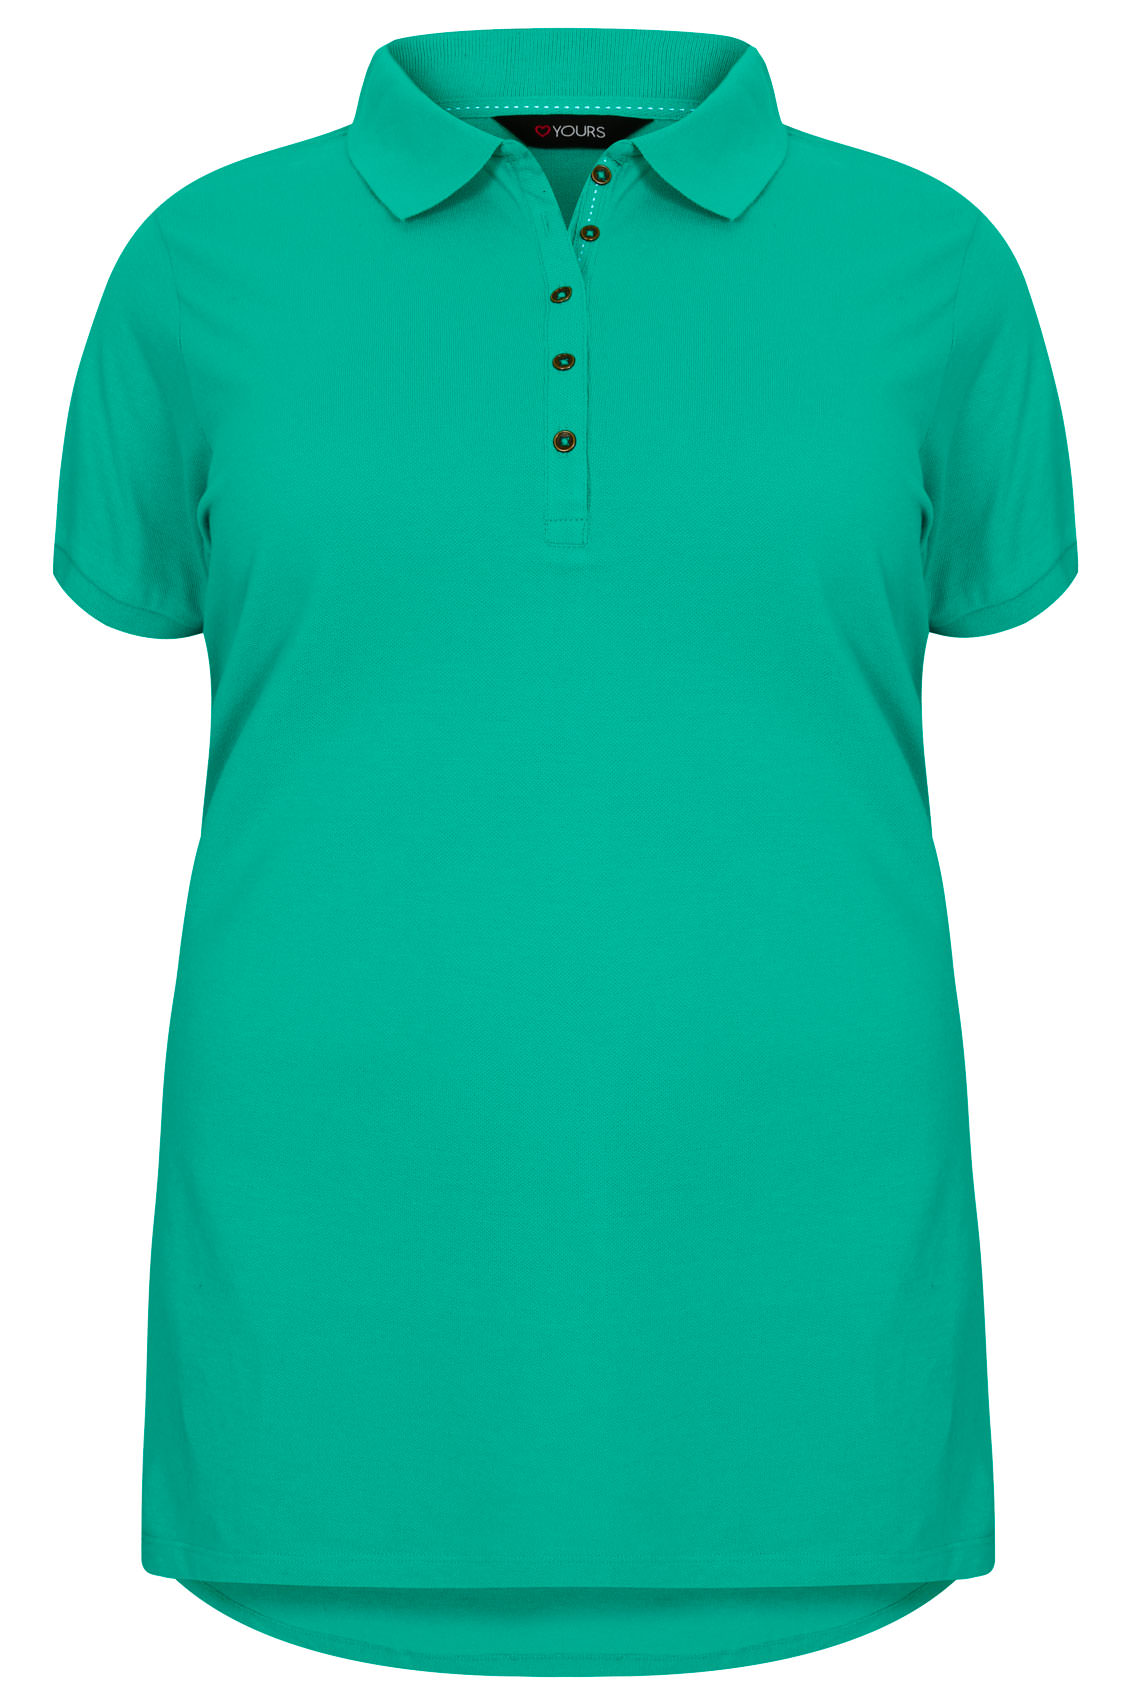 Jade Green Polo T Shirt Plus Size 16 To 36